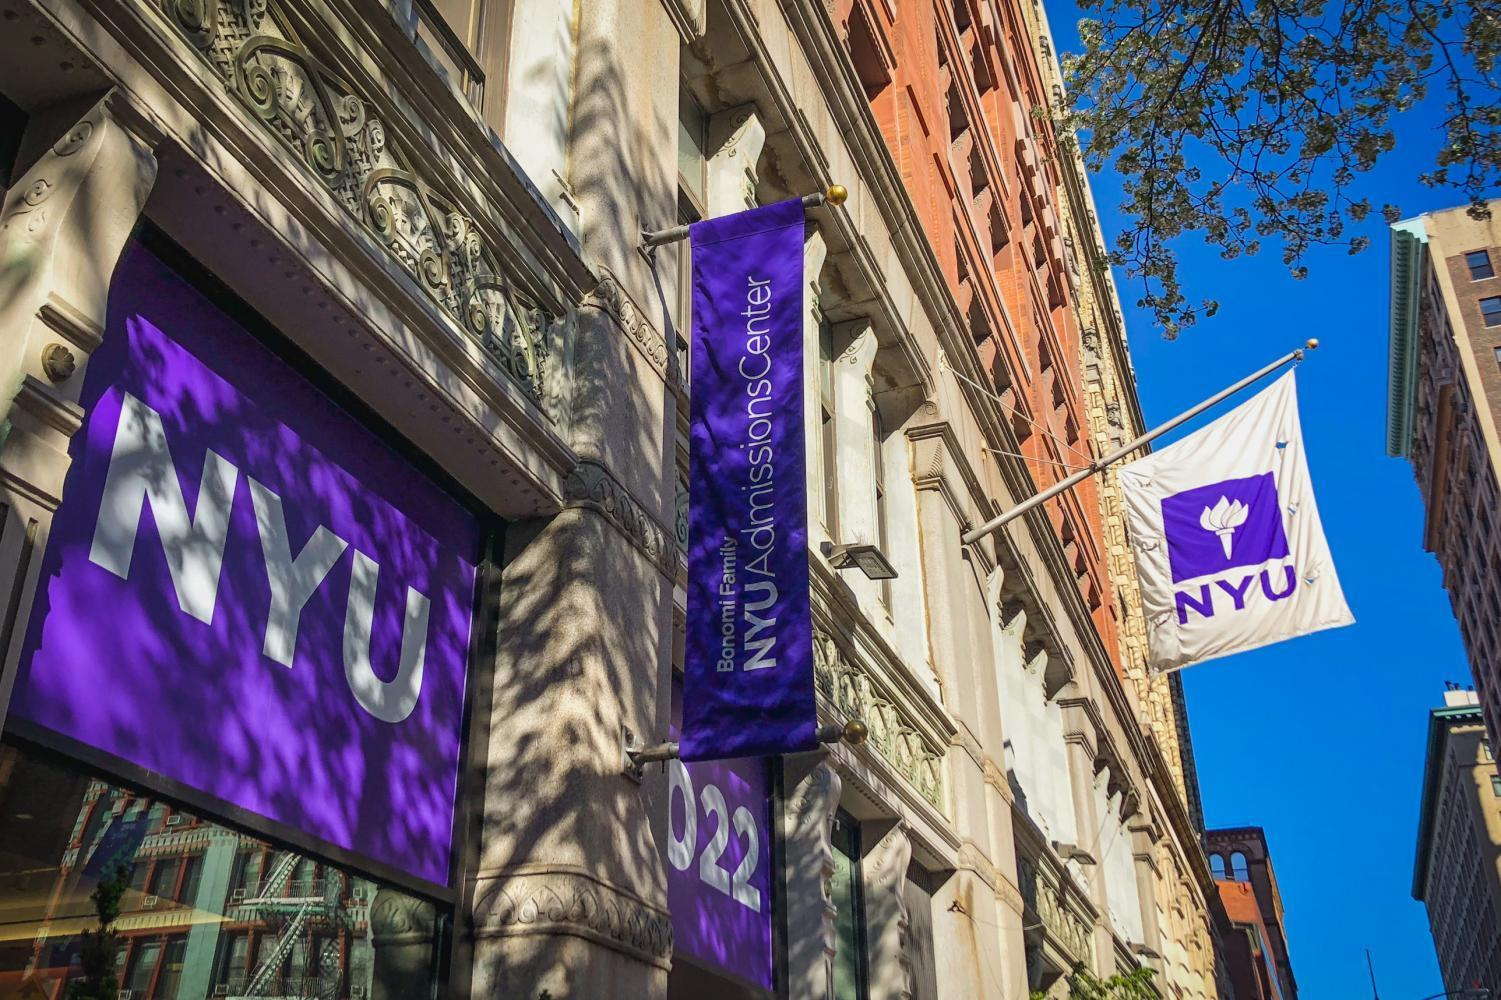 NYU's new Admissions Center.